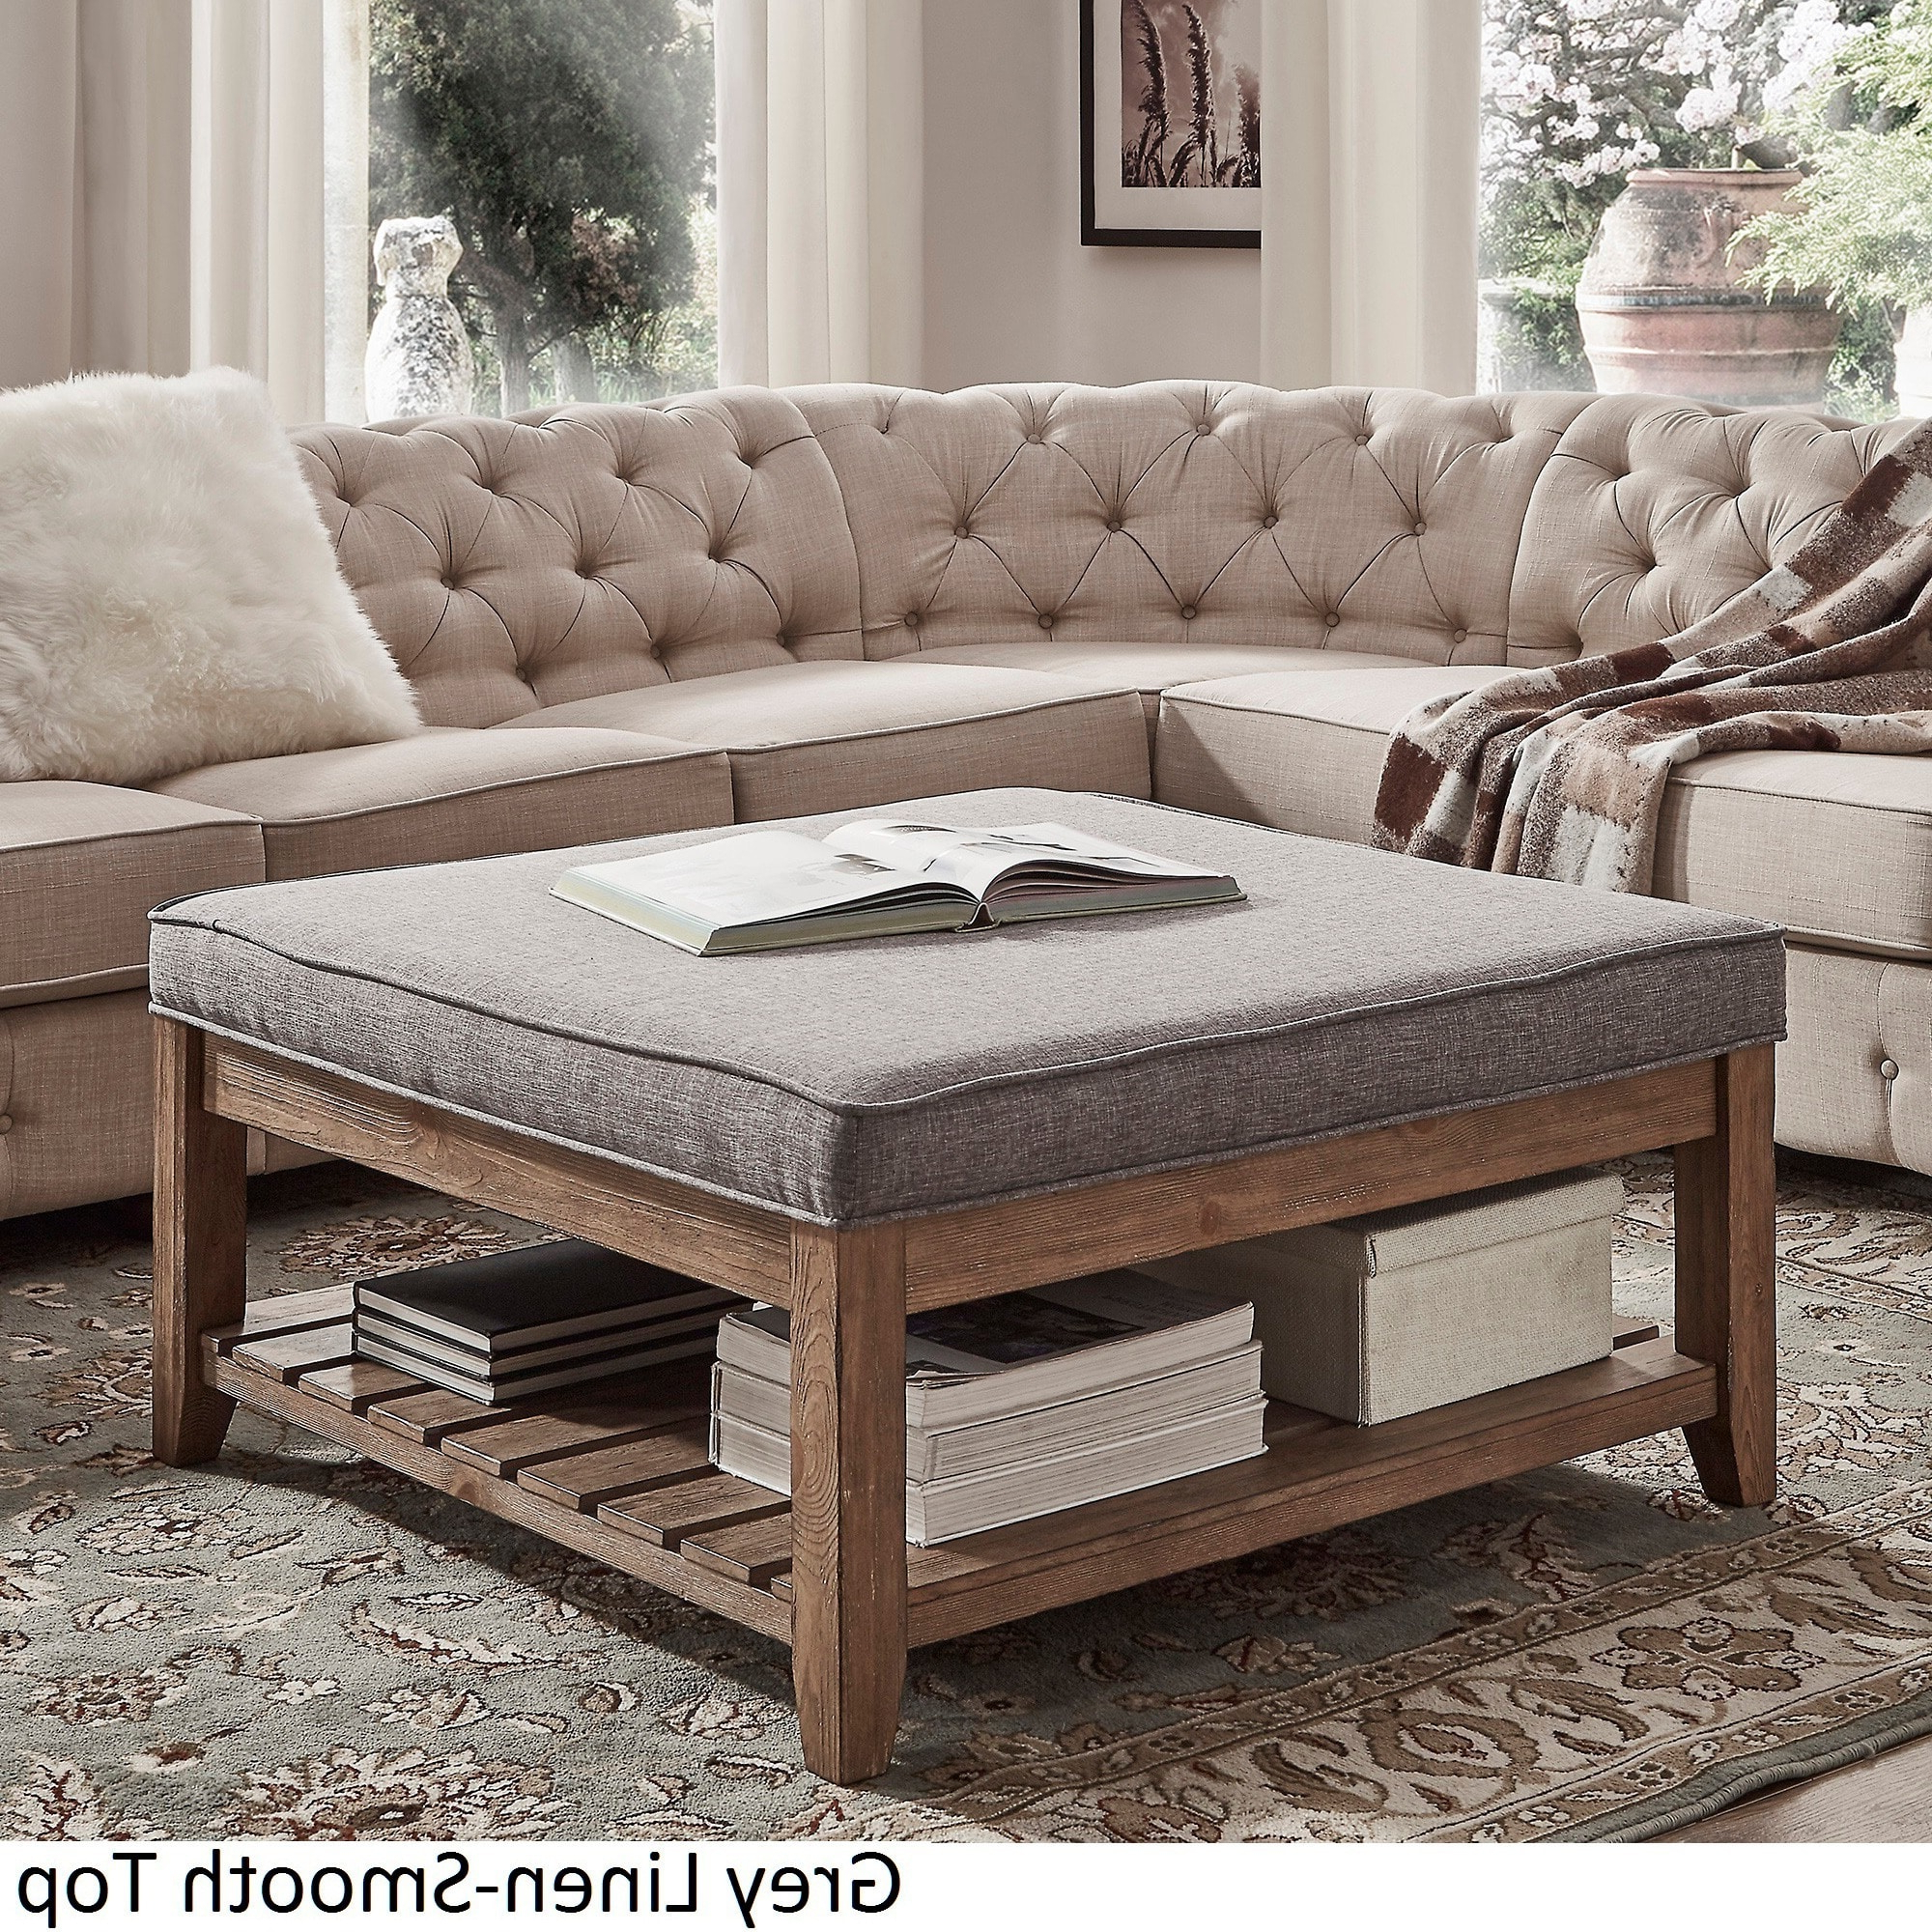 Most Up To Date Lennon Pine Planked Storage Ottoman Coffee Tables Intended For Inspire Q Lennon Pine Planked Storage Ottoman Coffee Tableartisan (View 3 of 20)